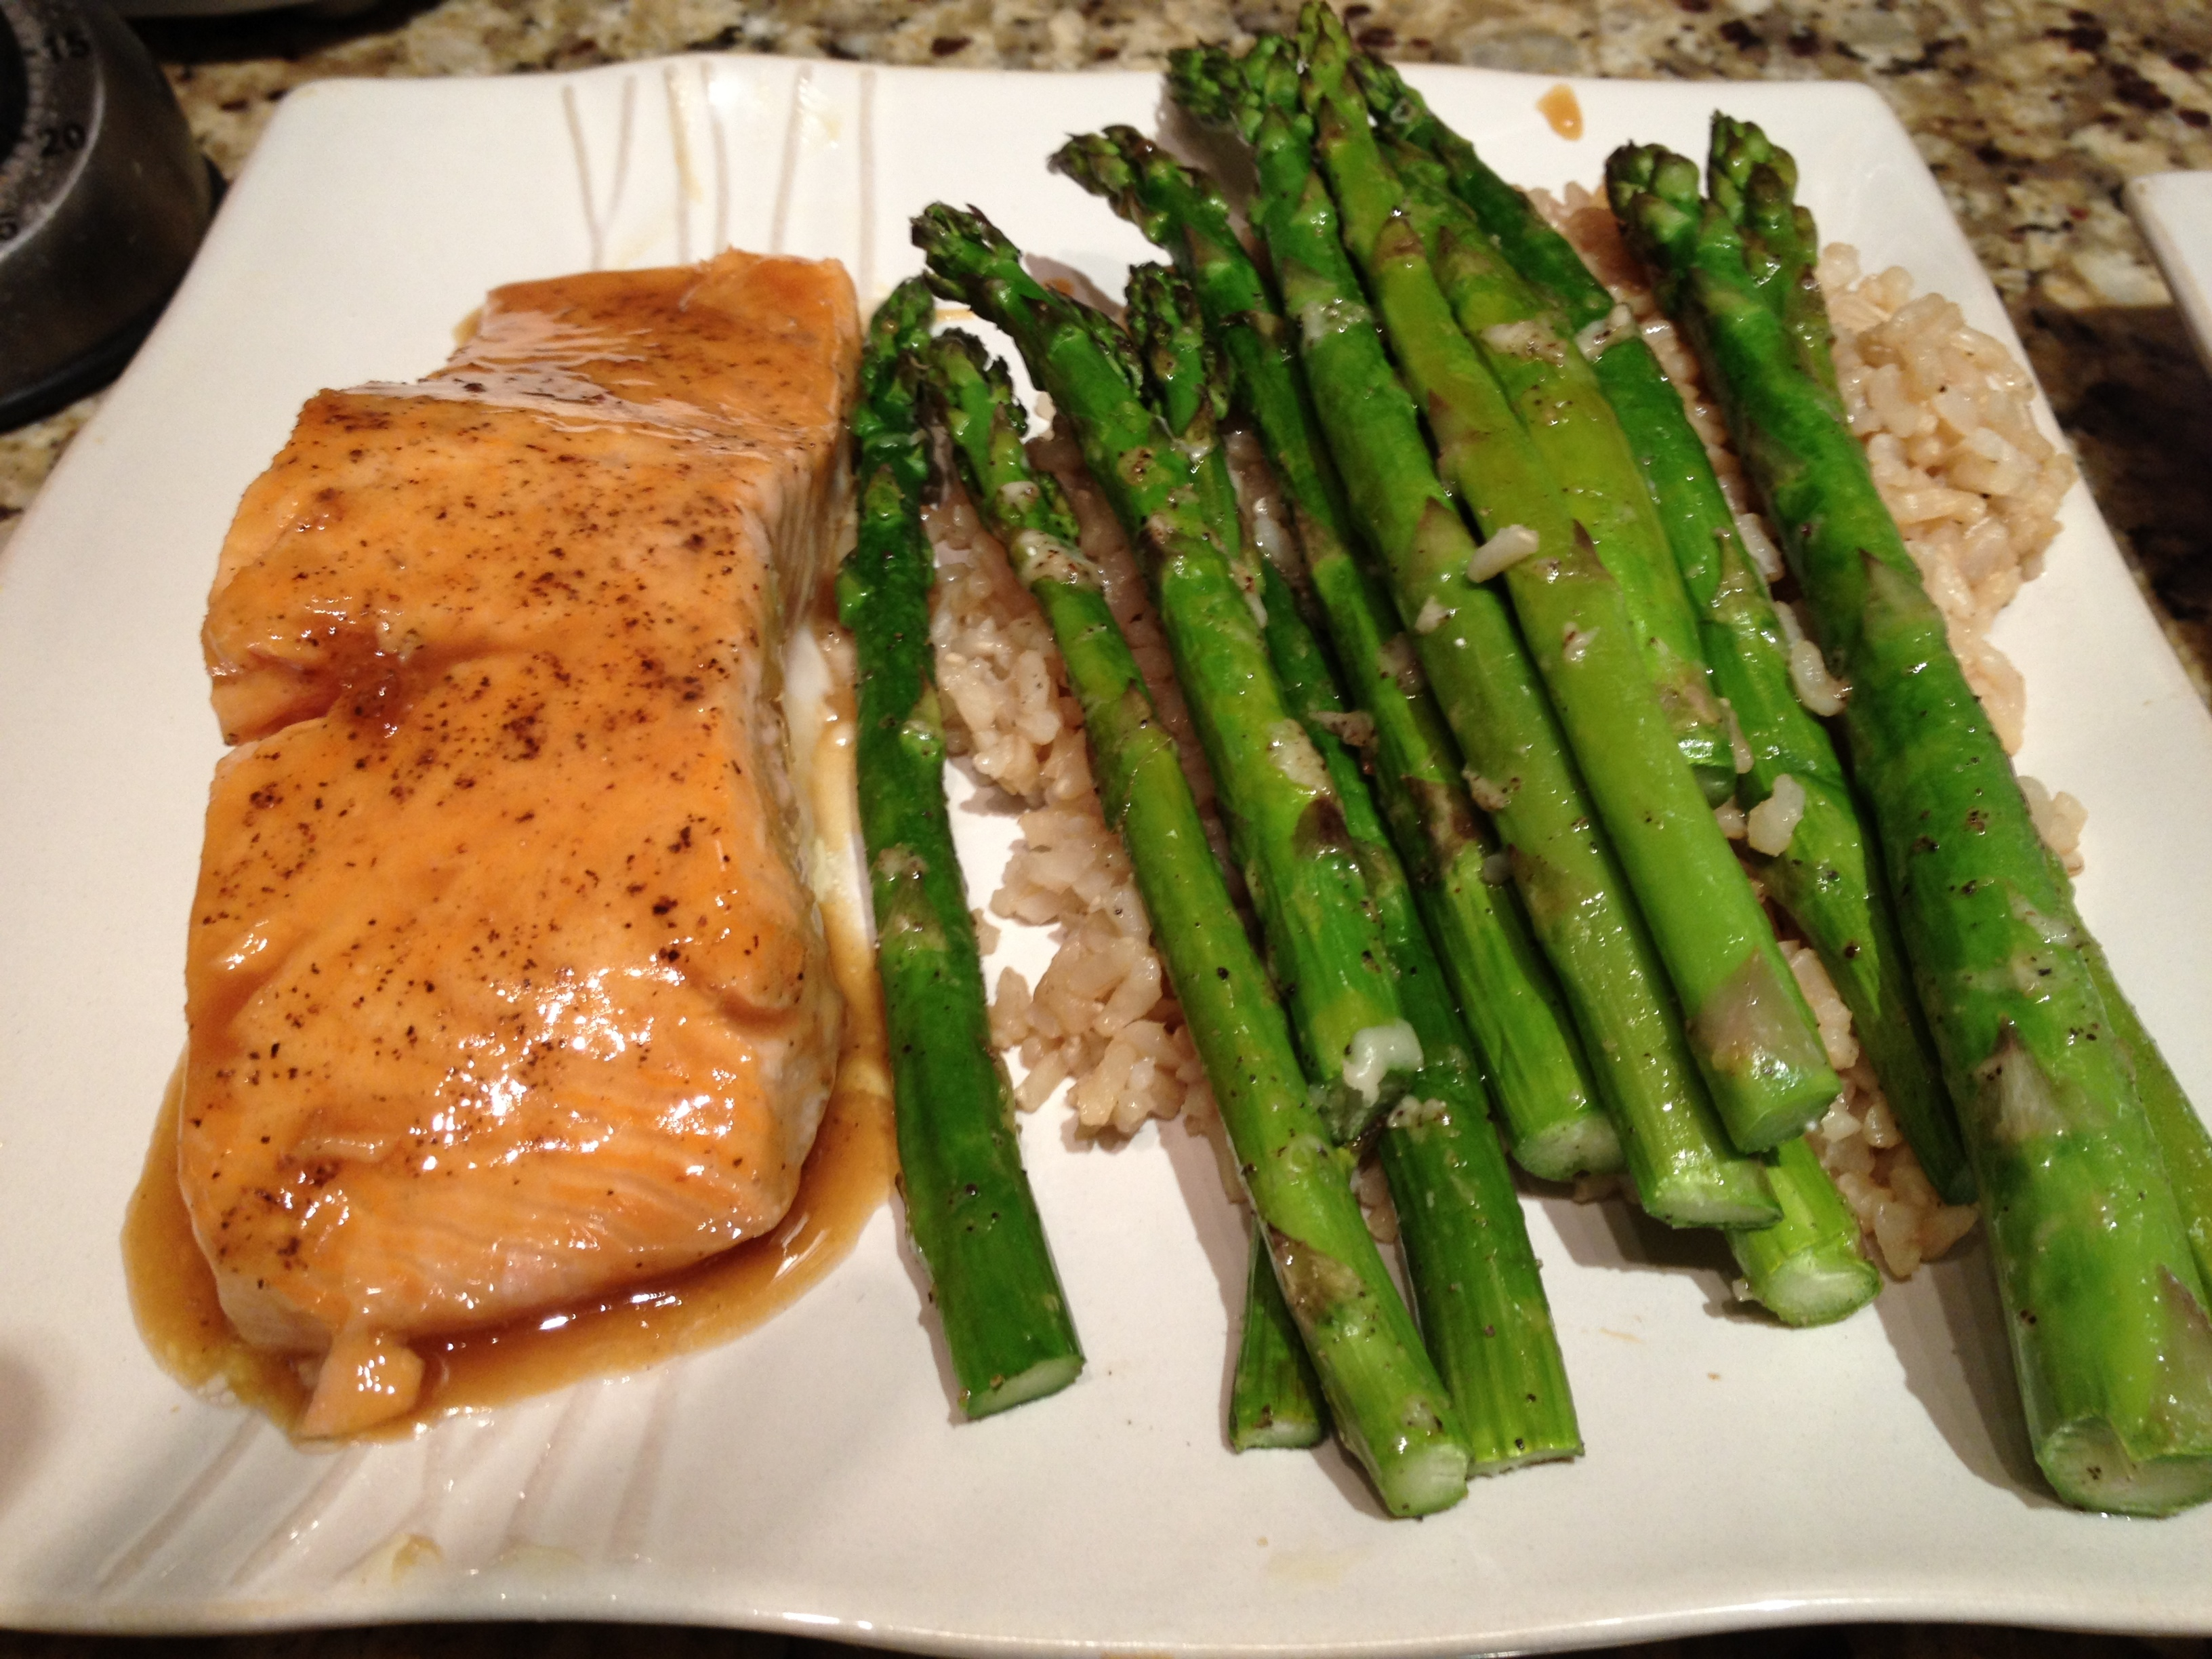 honey-mustard salmon with roasted parmesan asparagus.